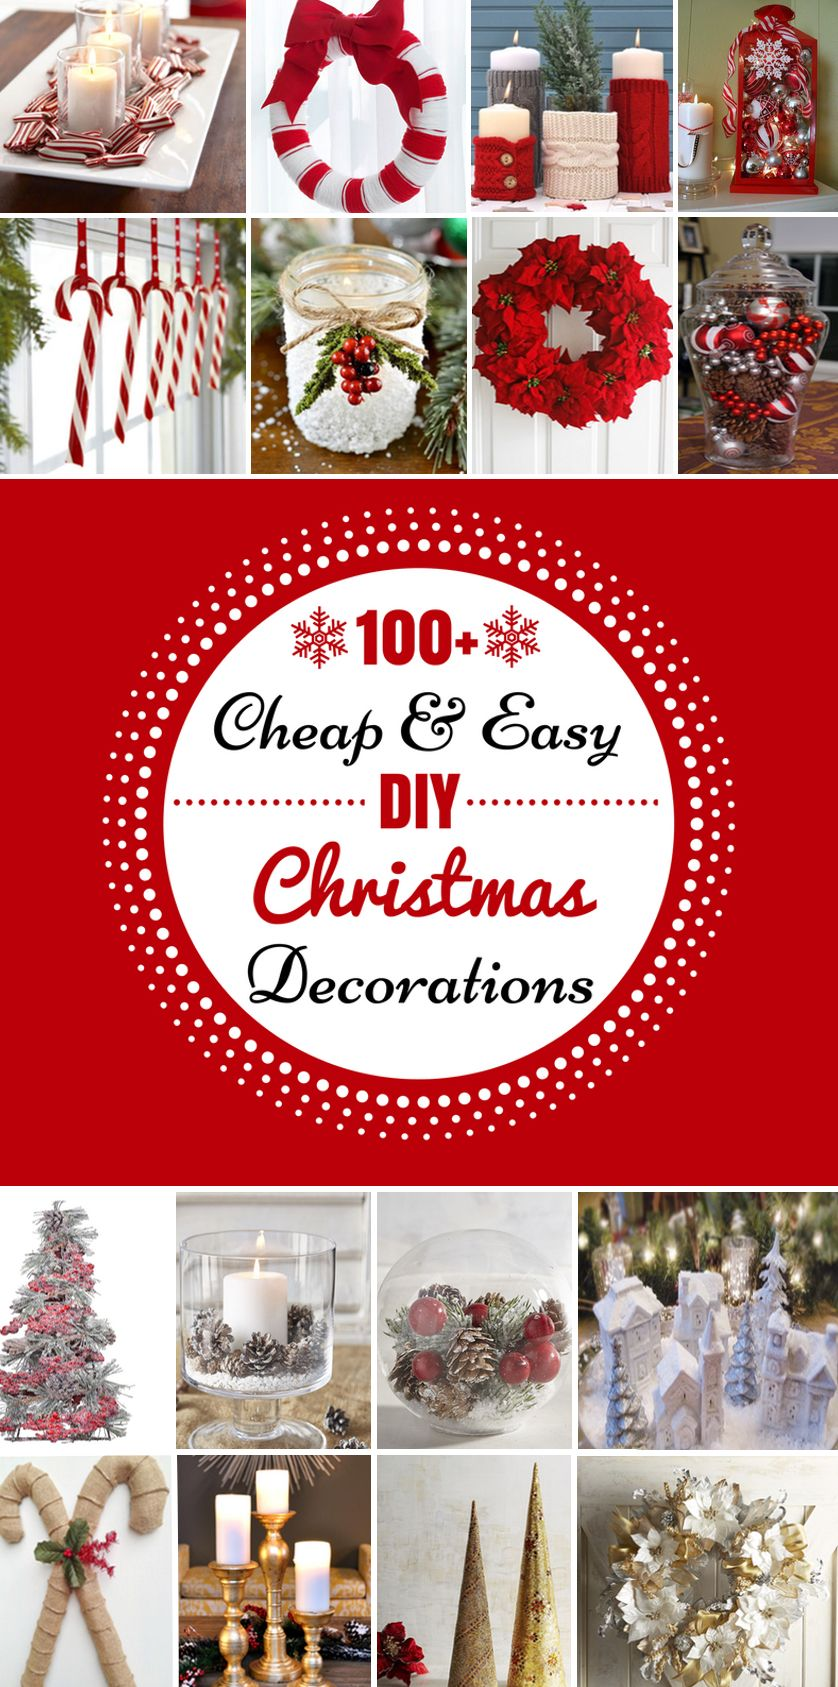 100 Cheap & Easy DIY Christmas Decorations Diy christmas